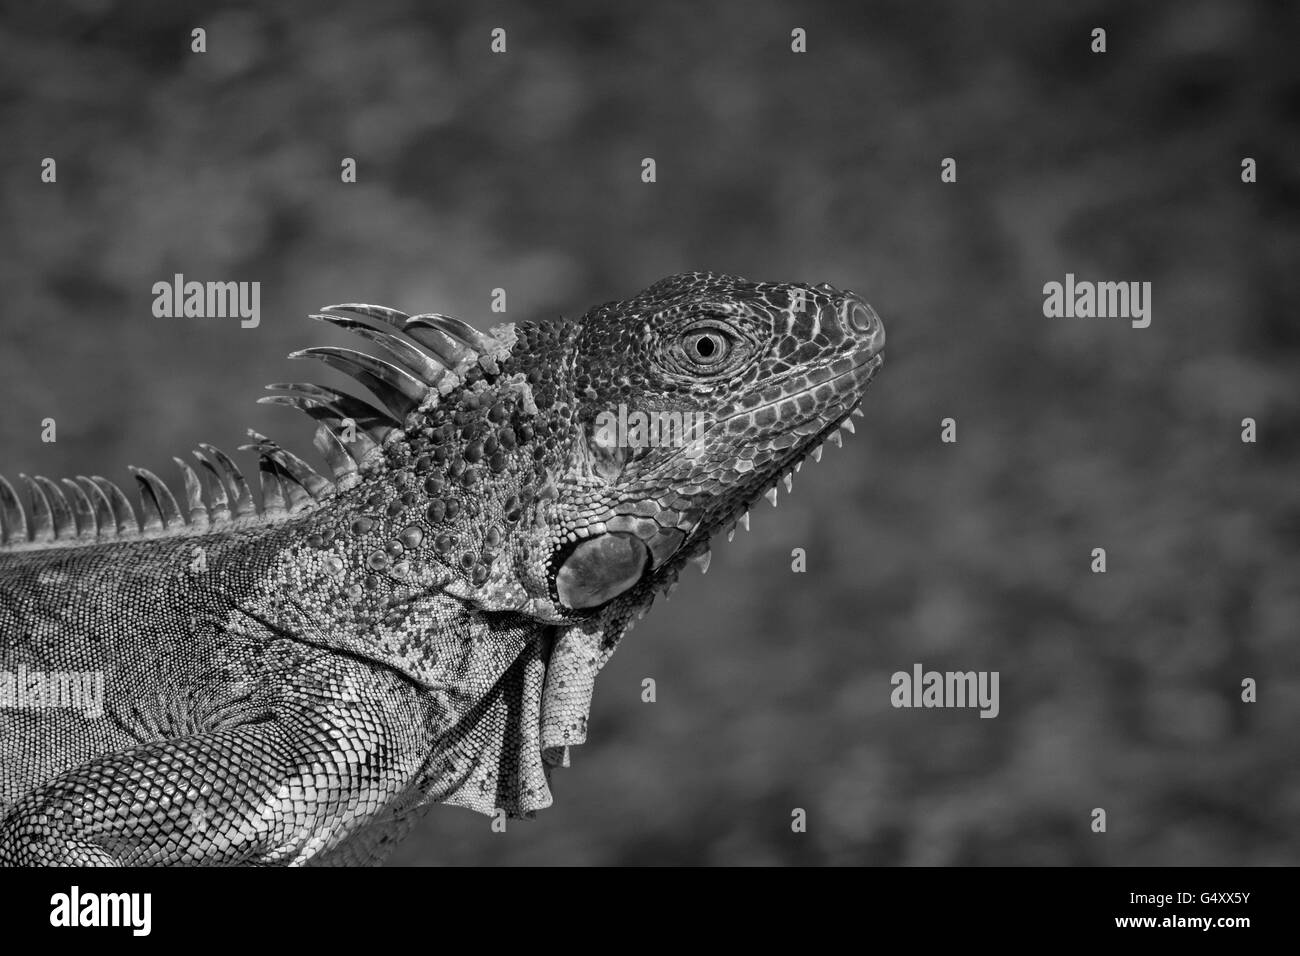 Black & white image of a large lizard - Stock Image